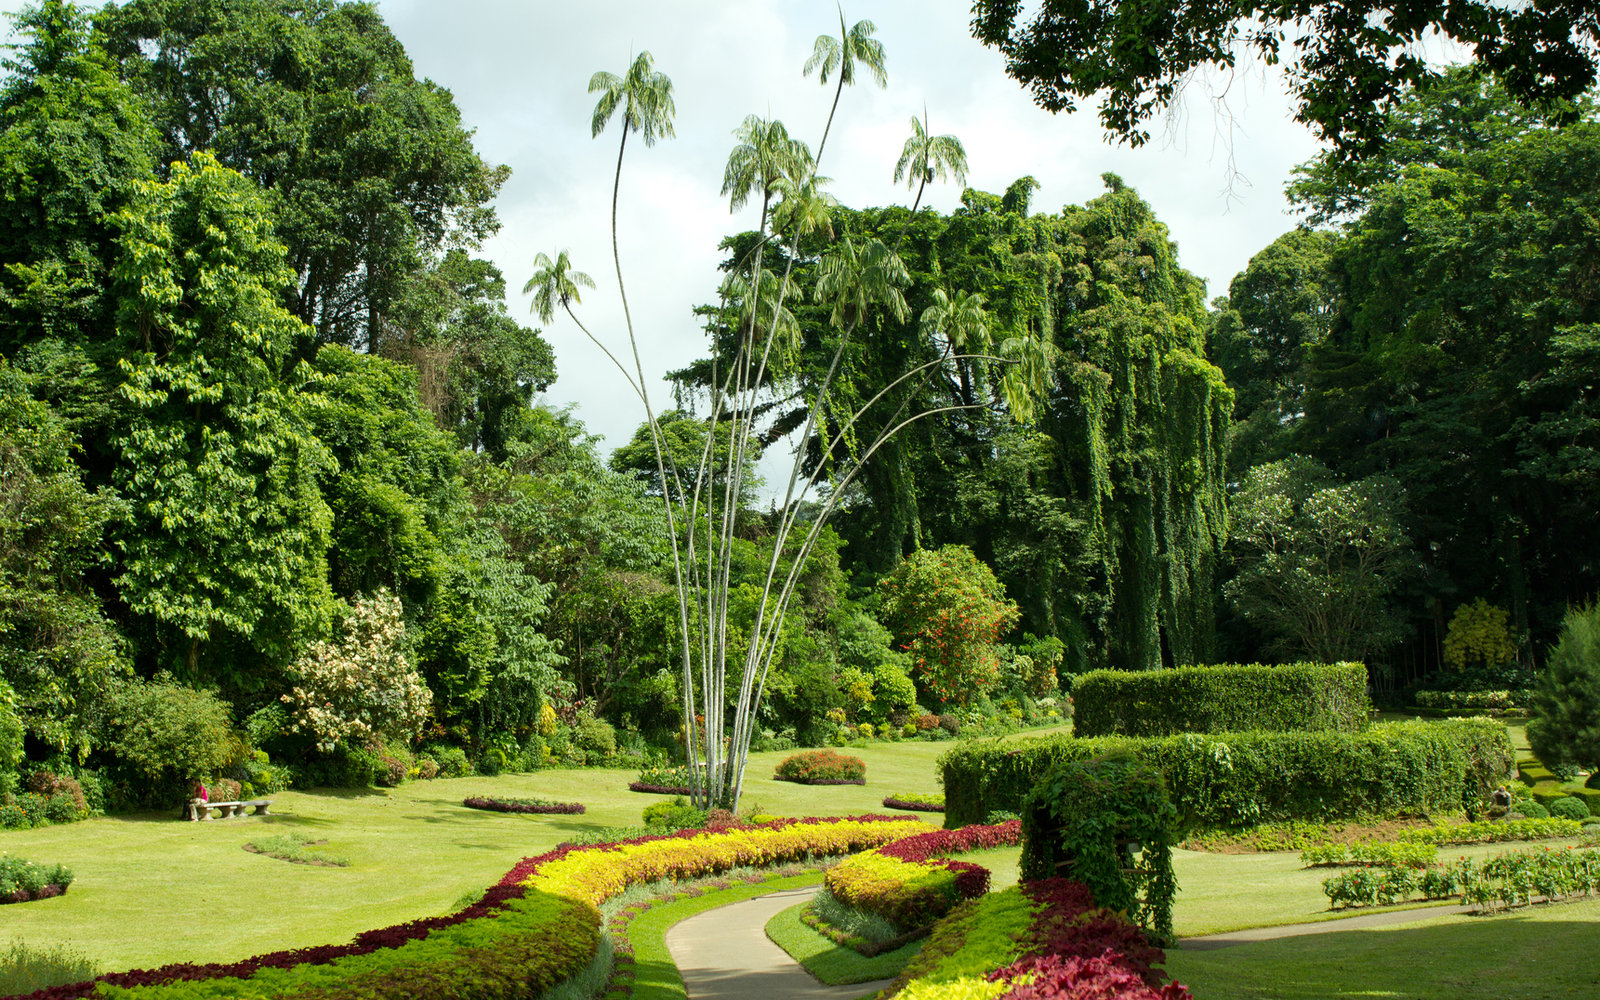 The Most Beautiful Botanical Gardens in the World